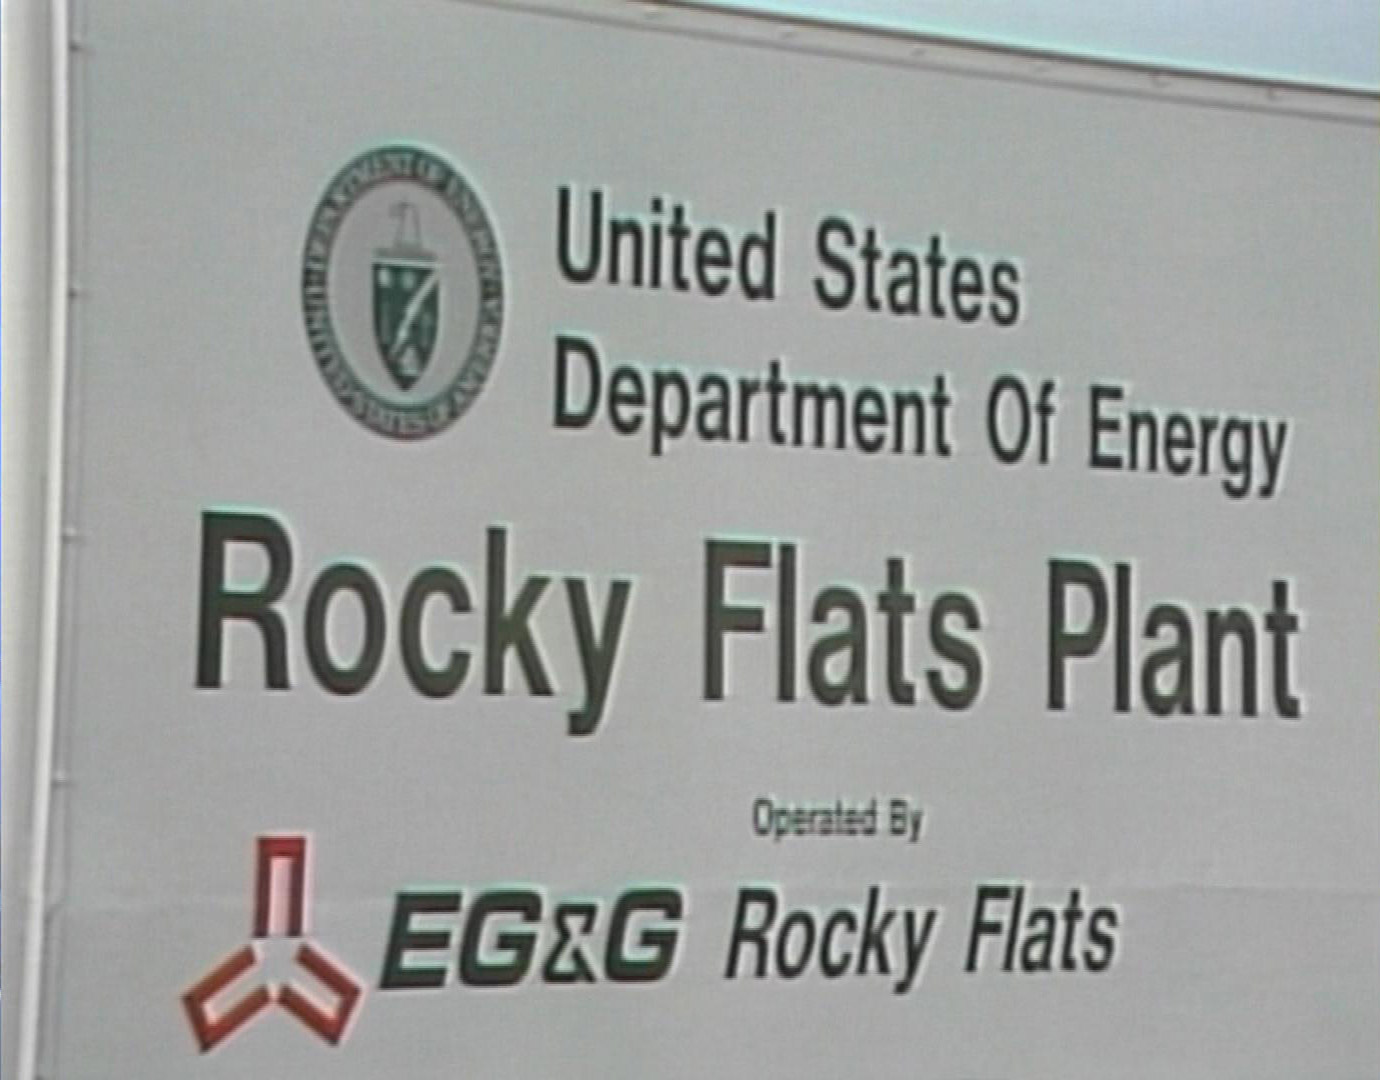 United States Department of Energy Rocky Flats Plant in Colorado (file photo credit: CBS)